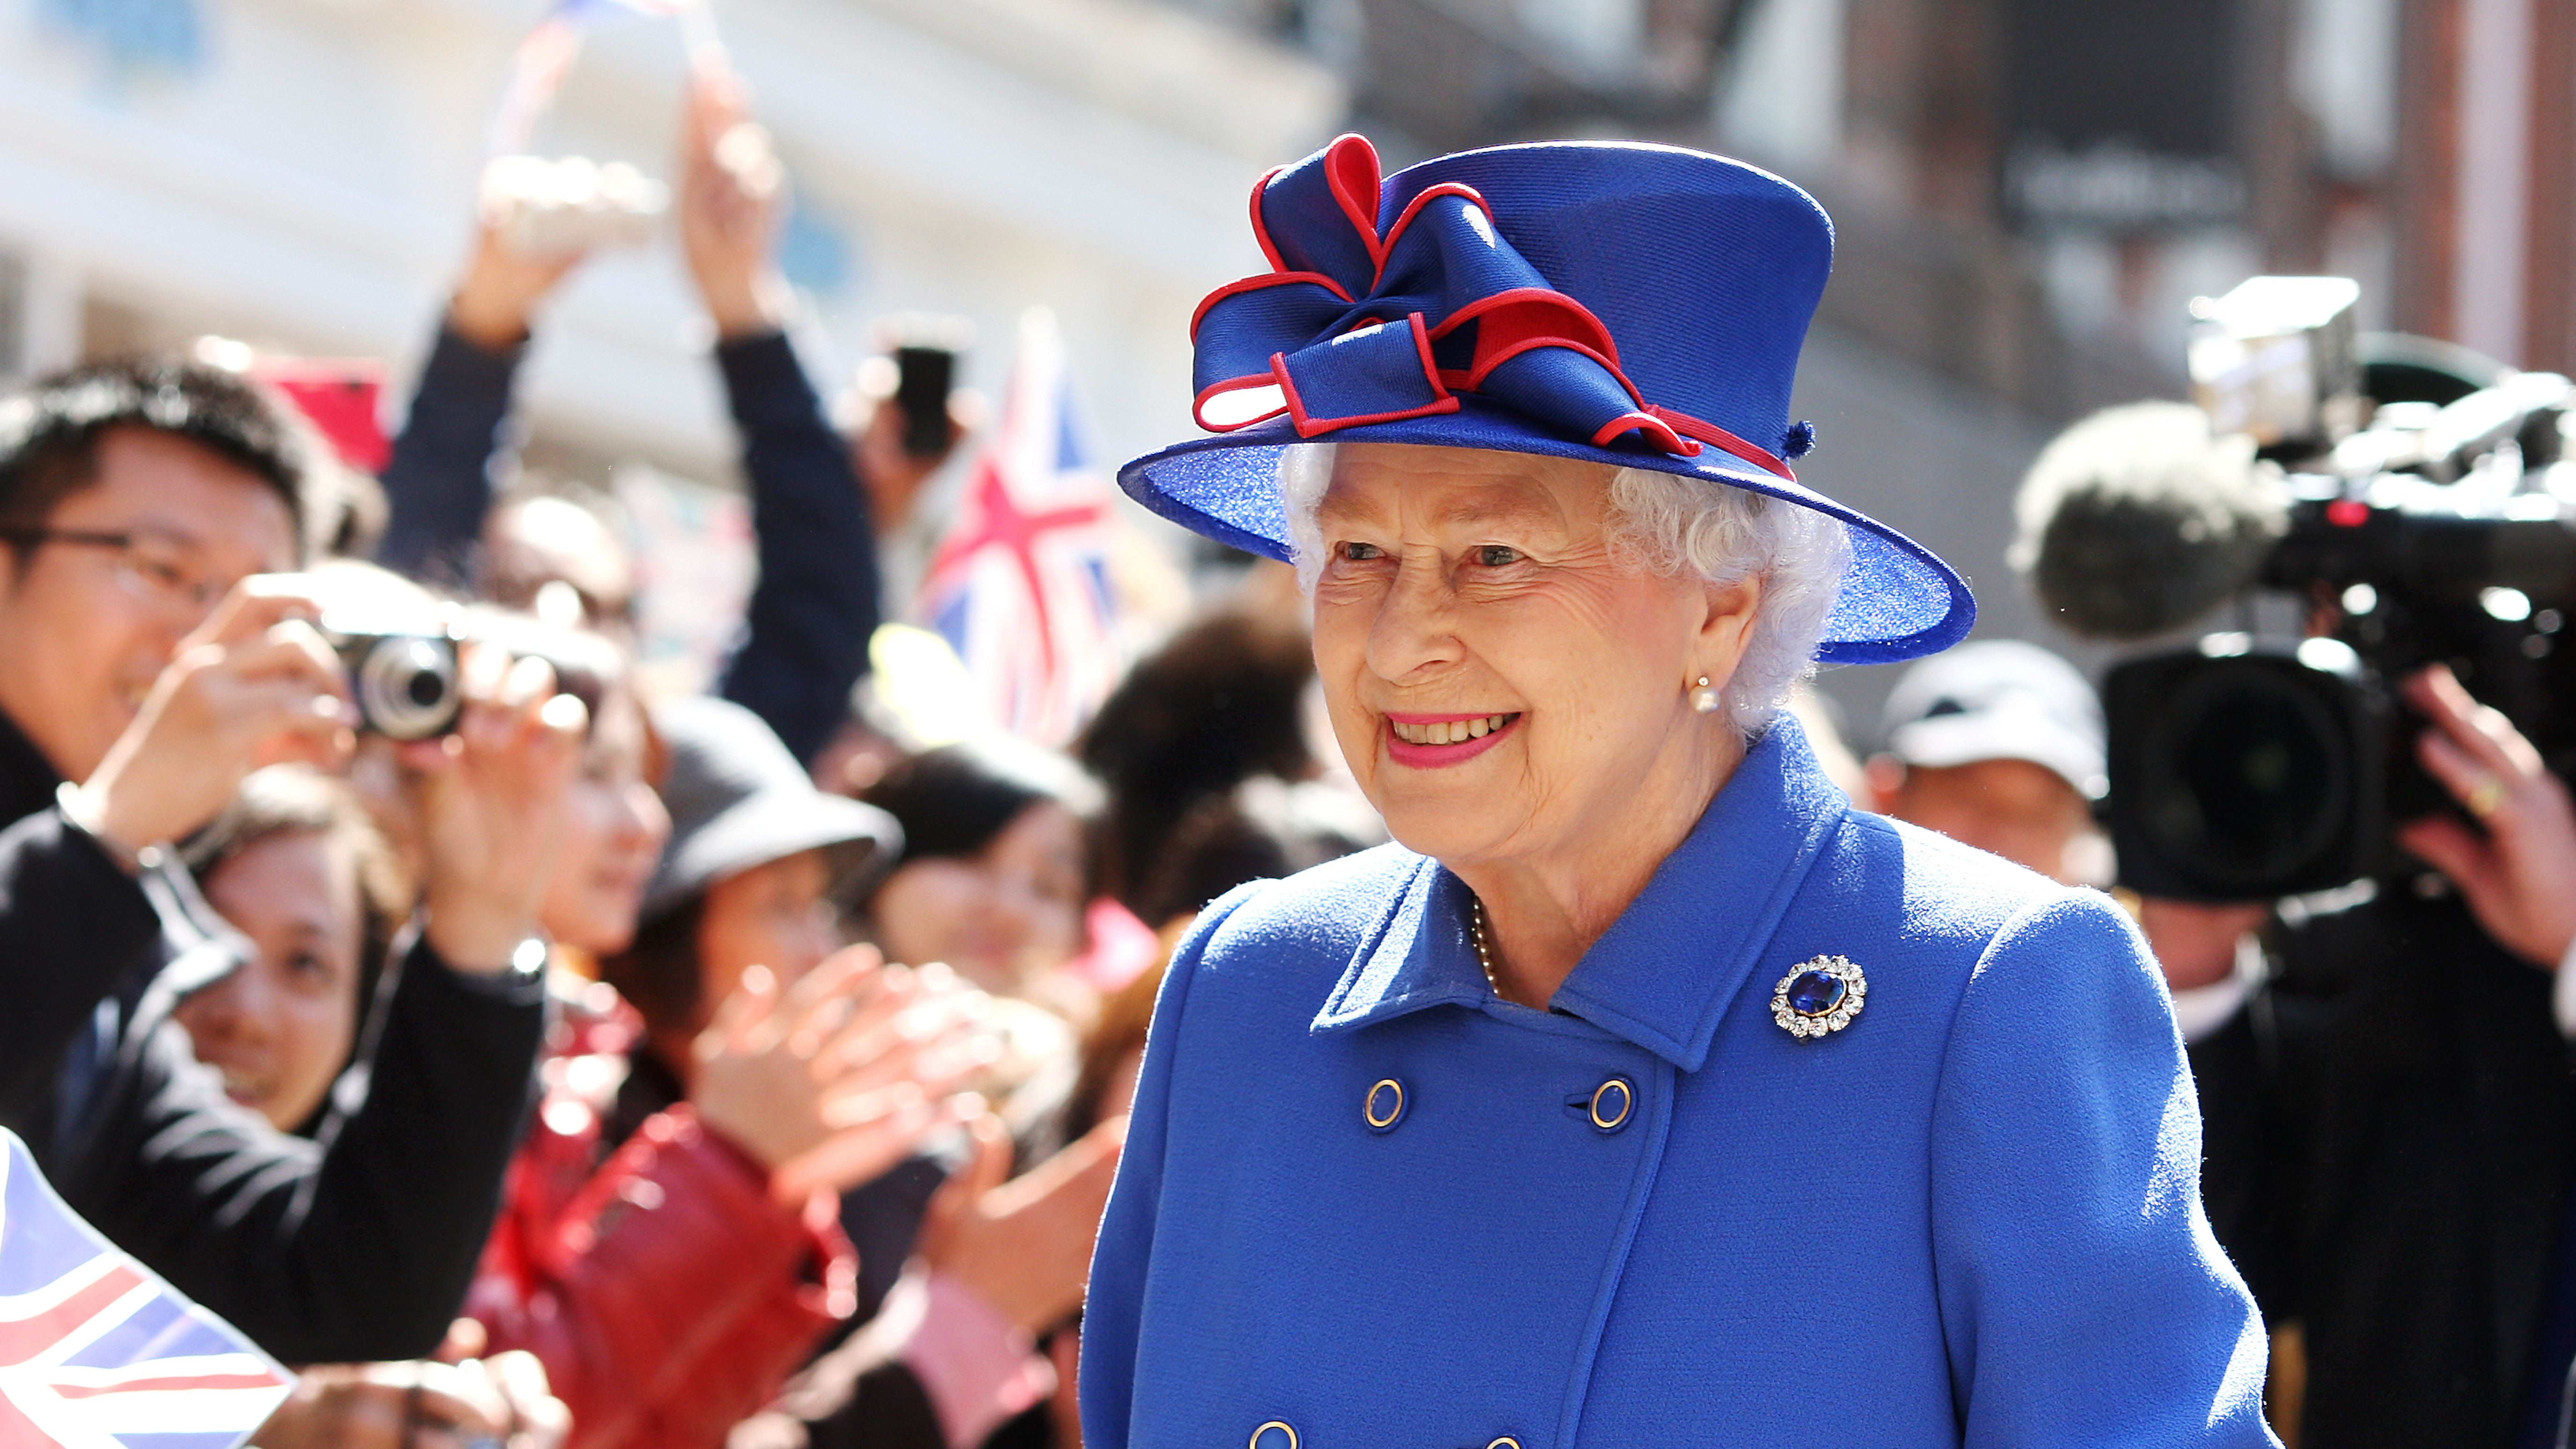 The Queen Is Being Backed To Wear A Blue Hat At Royal Wedding